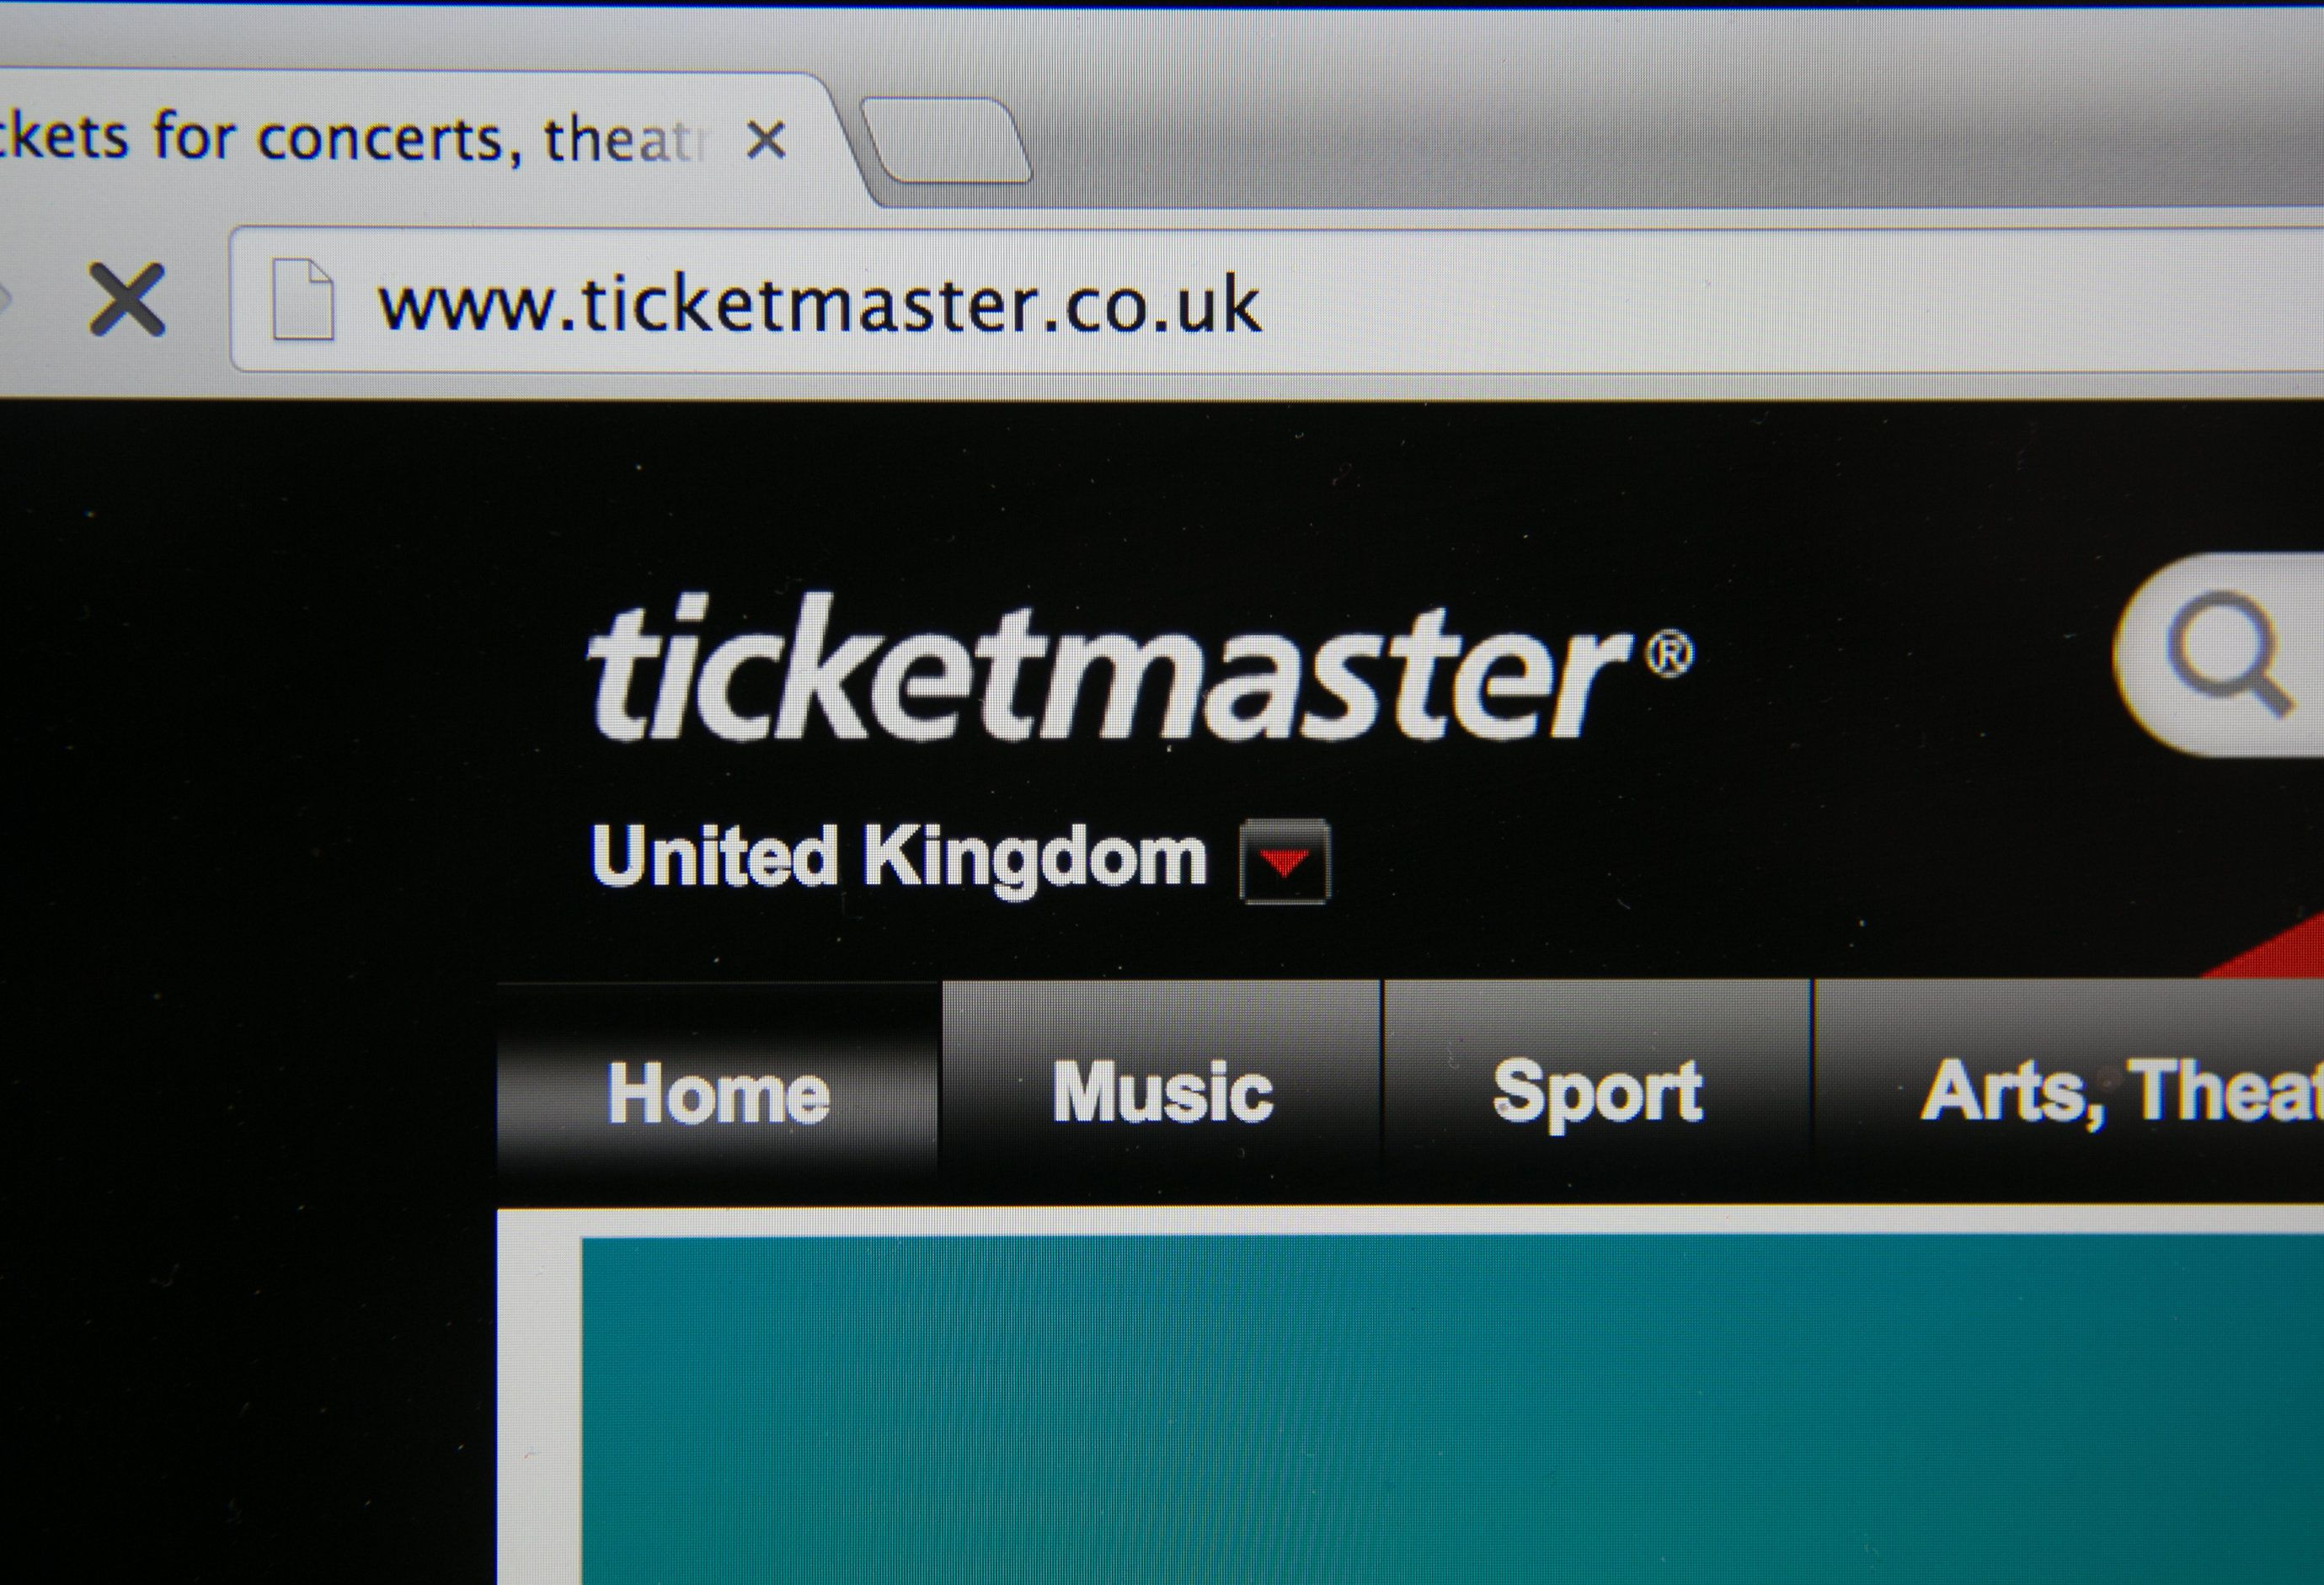 BRISTOL, UNITED KINGDOM - AUGUST 11:  In this photo illustration a laptop displays the ticketmaster website on August 11, 2014 in Bristol, United Kingdom. This week marks the 20th anniversary of the first online sale. Since that sale - a copy of an album by the artist Sting - online retailing has grown to such an extent that it is now claimed that 95 percent of the UK population has shopped online and close to one in four deciding to shop online each week.  (Photo Illustration by Matt Cardy/Getty Images)